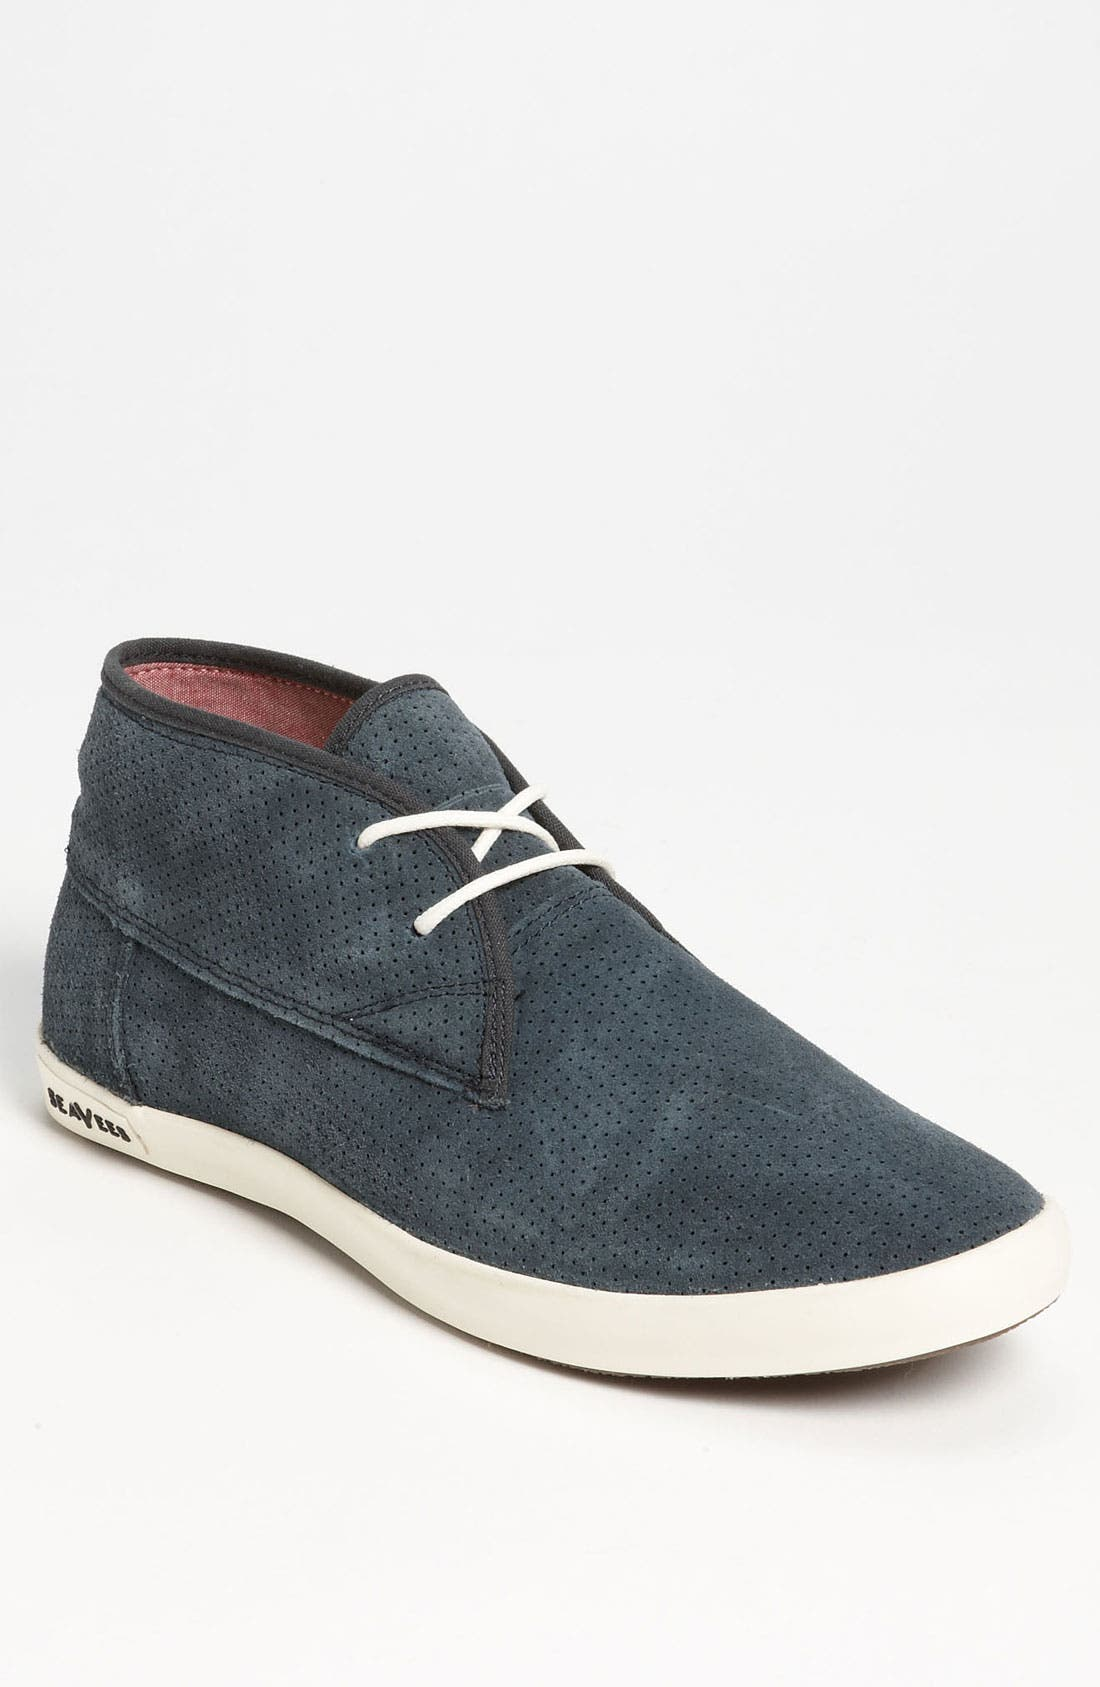 Alternate Image 1 Selected - SeaVees '04/60 Two-Eye Floater' Perforated Chukka Boot (Online Only)